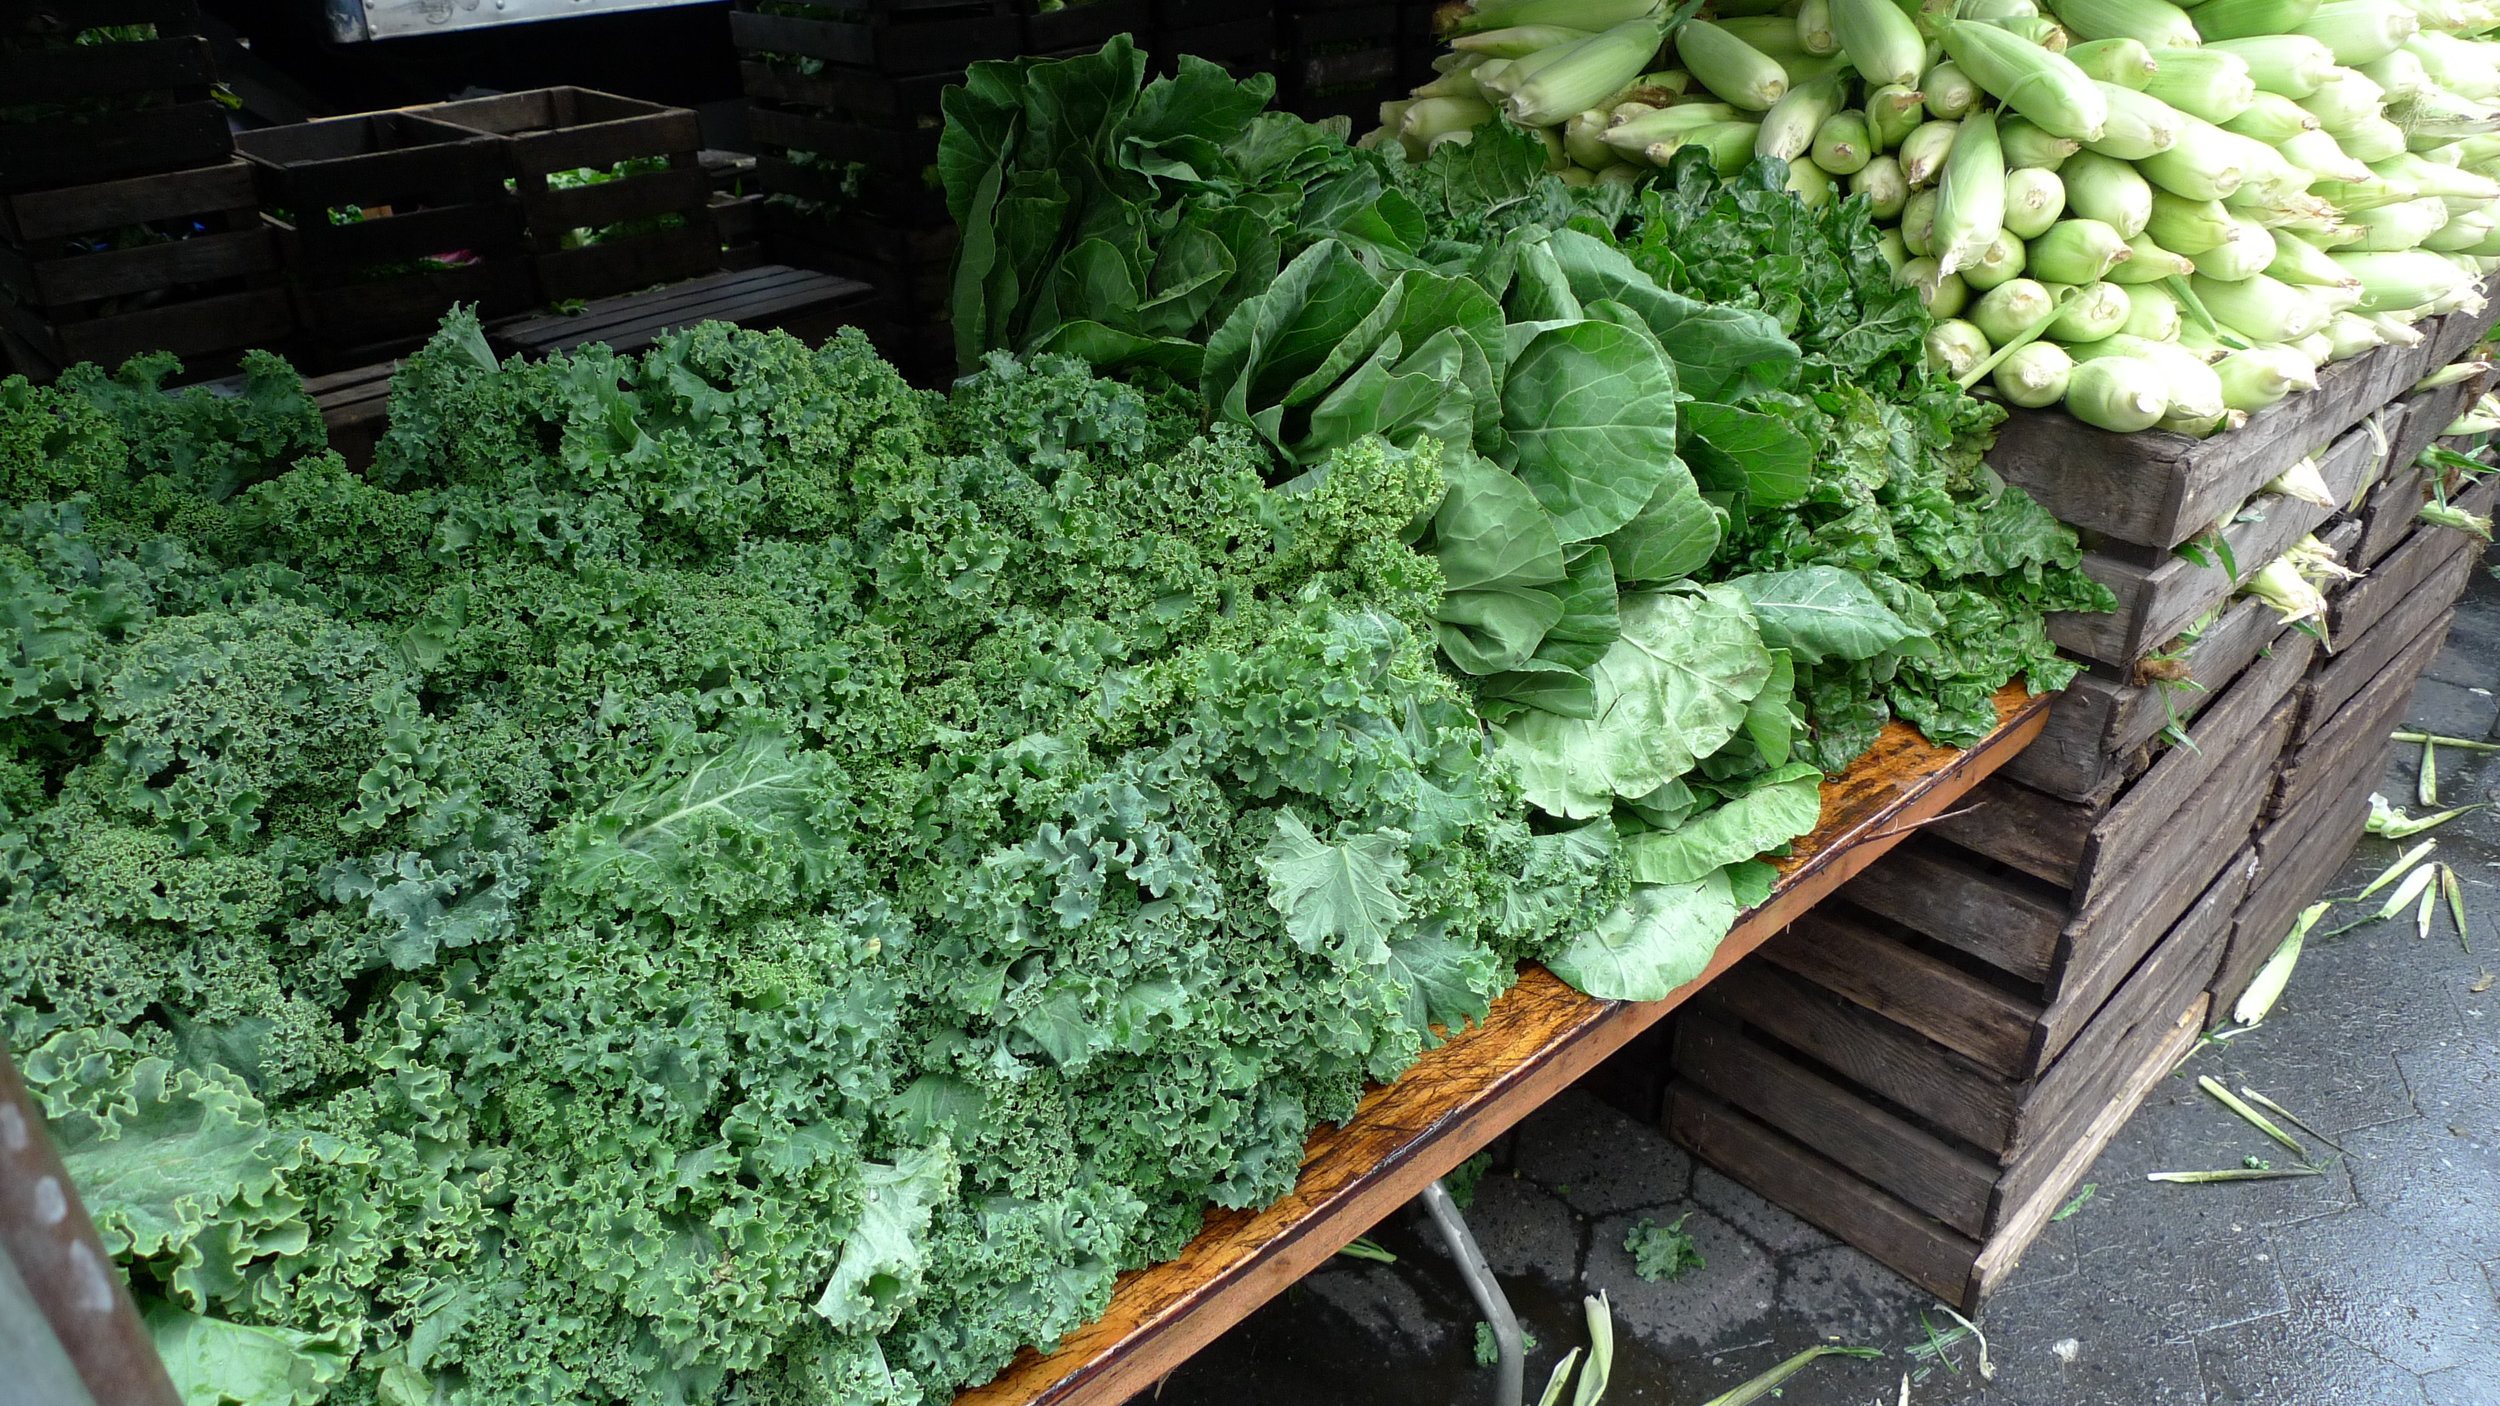 5 reasons kale is a detox food - vegetariantimes.com, october 2015